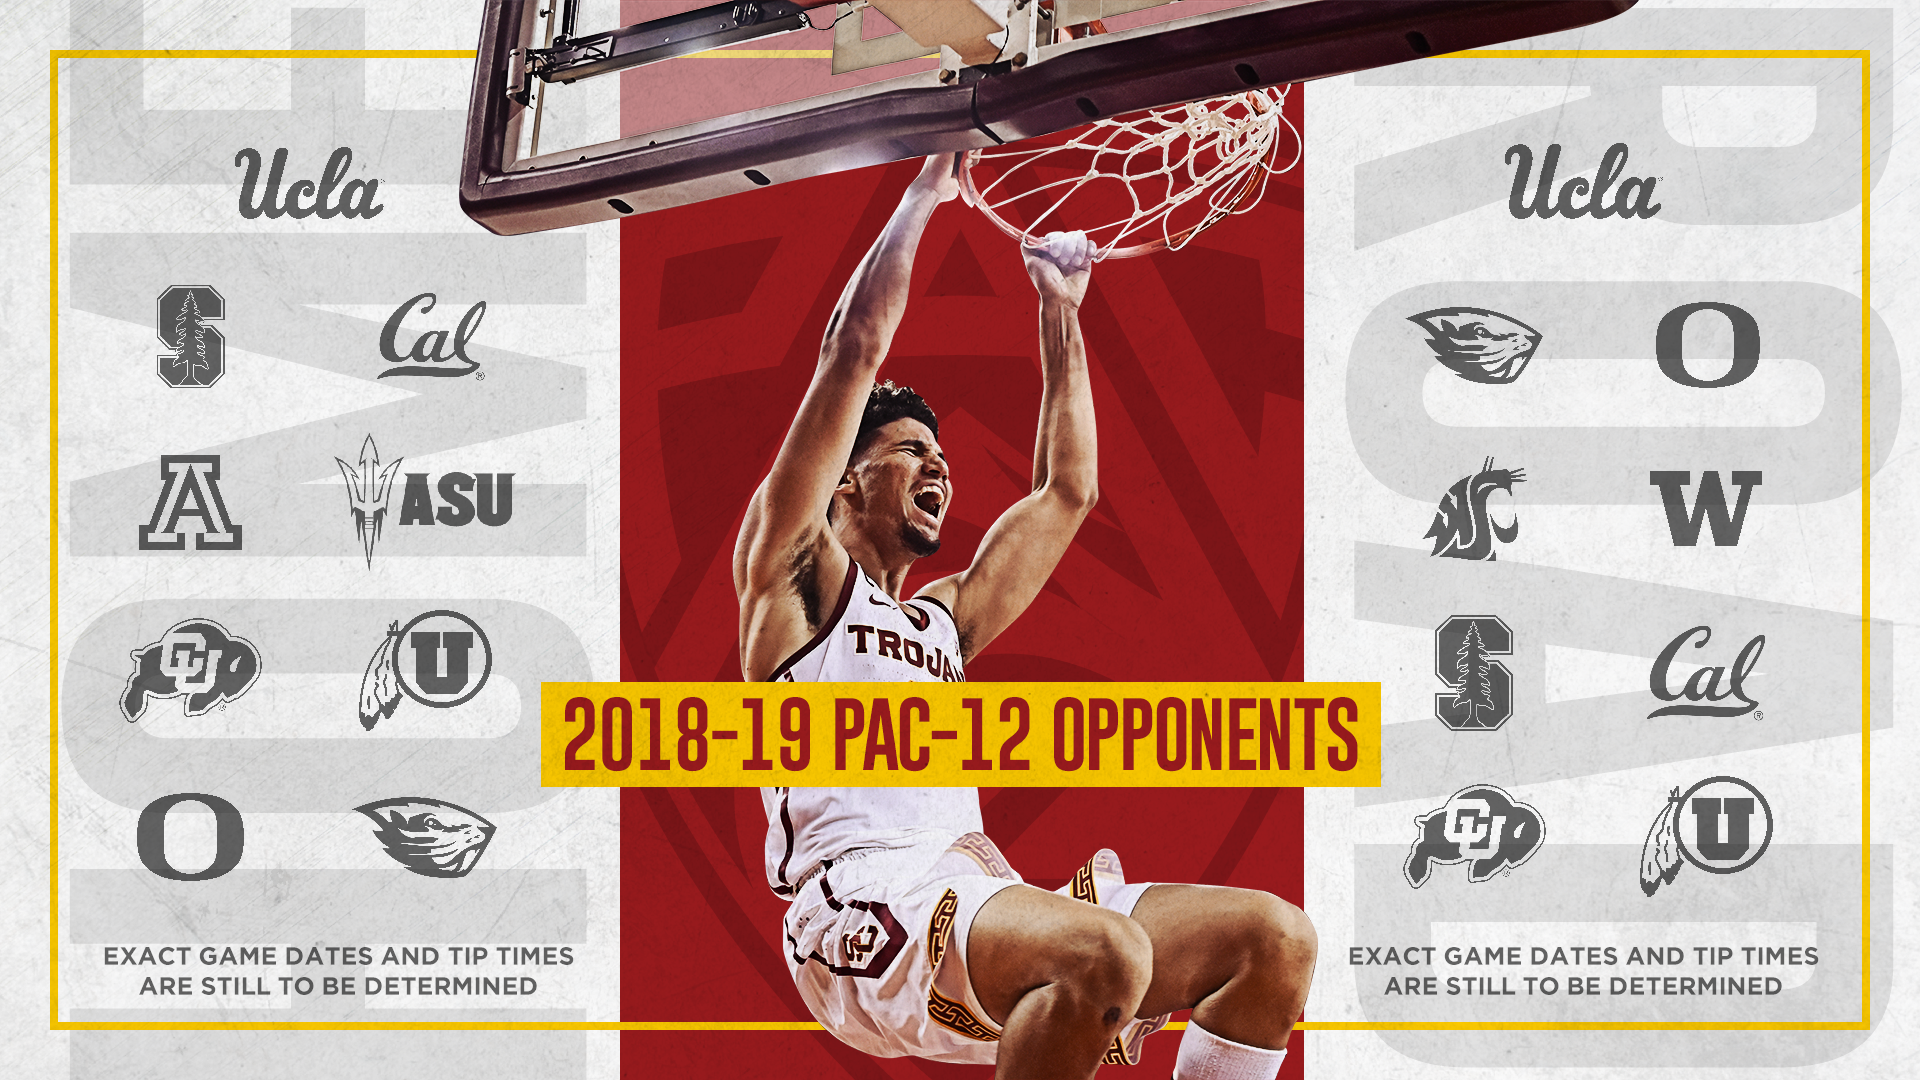 usc announces 2018-19 men's basketball schedule - usc athletics